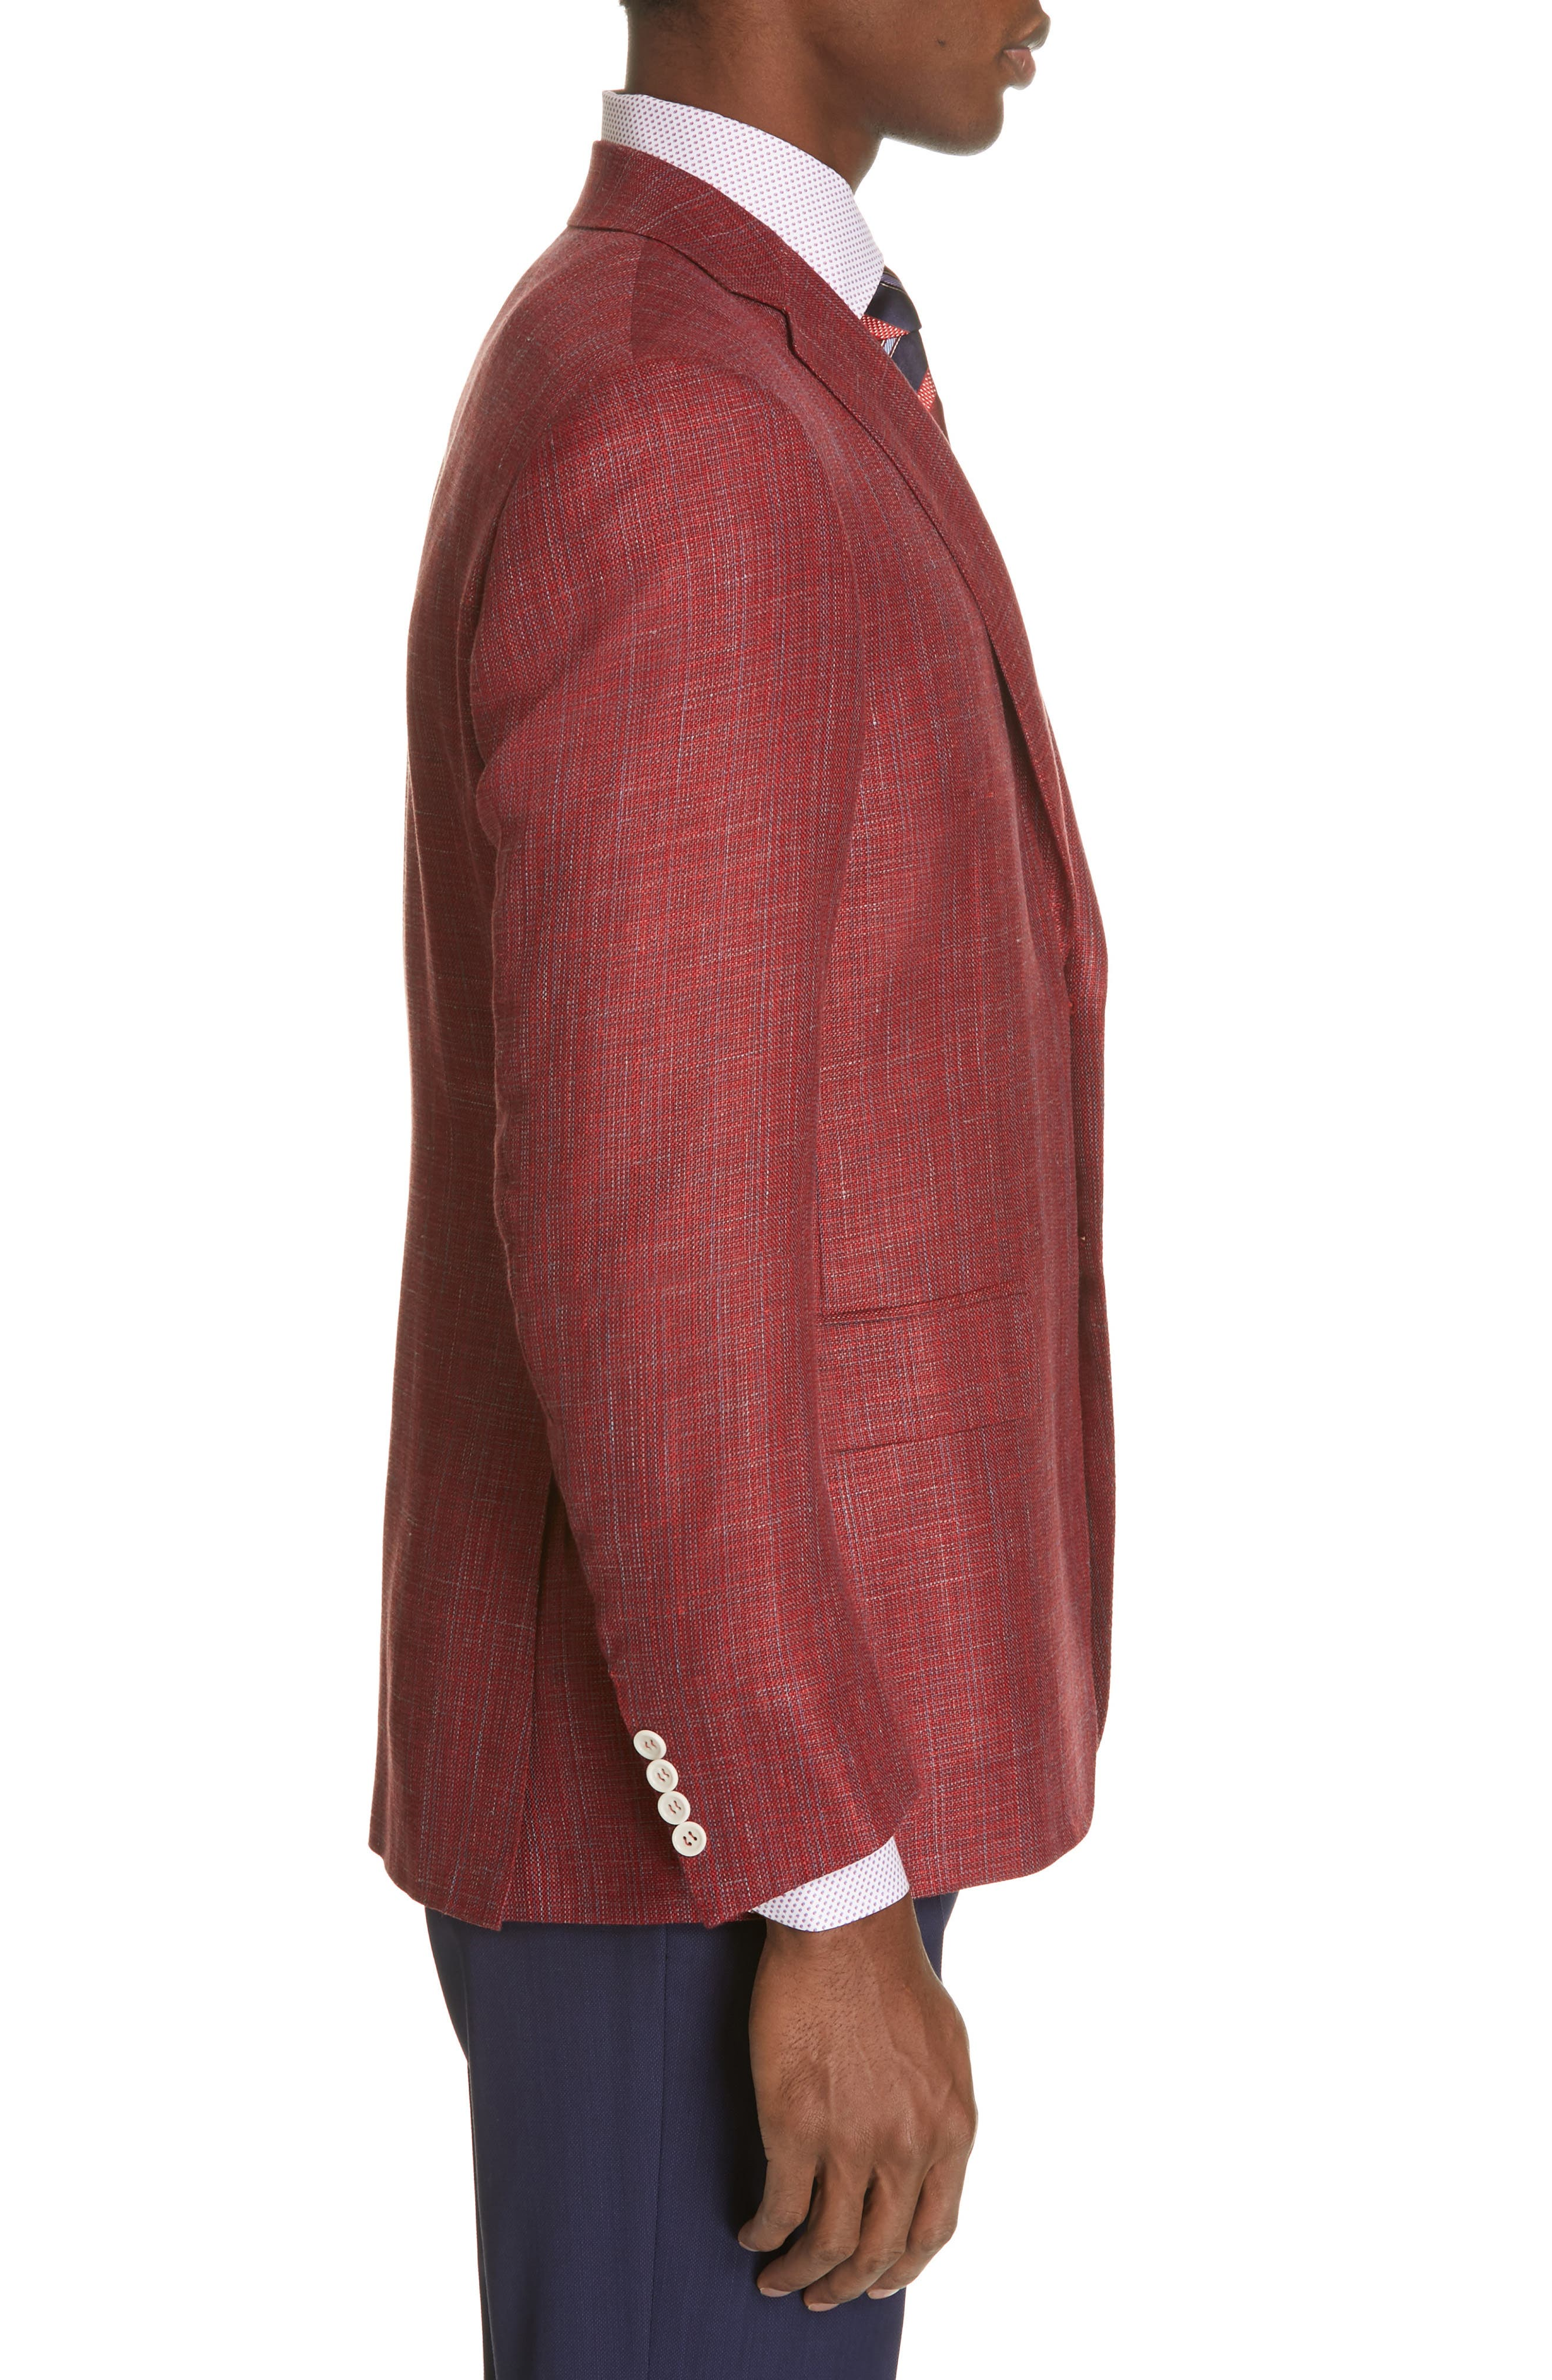 CANALI, Siena Classic Fit Wool, Silk & Linen Blend Sport Coat, Alternate thumbnail 3, color, RED